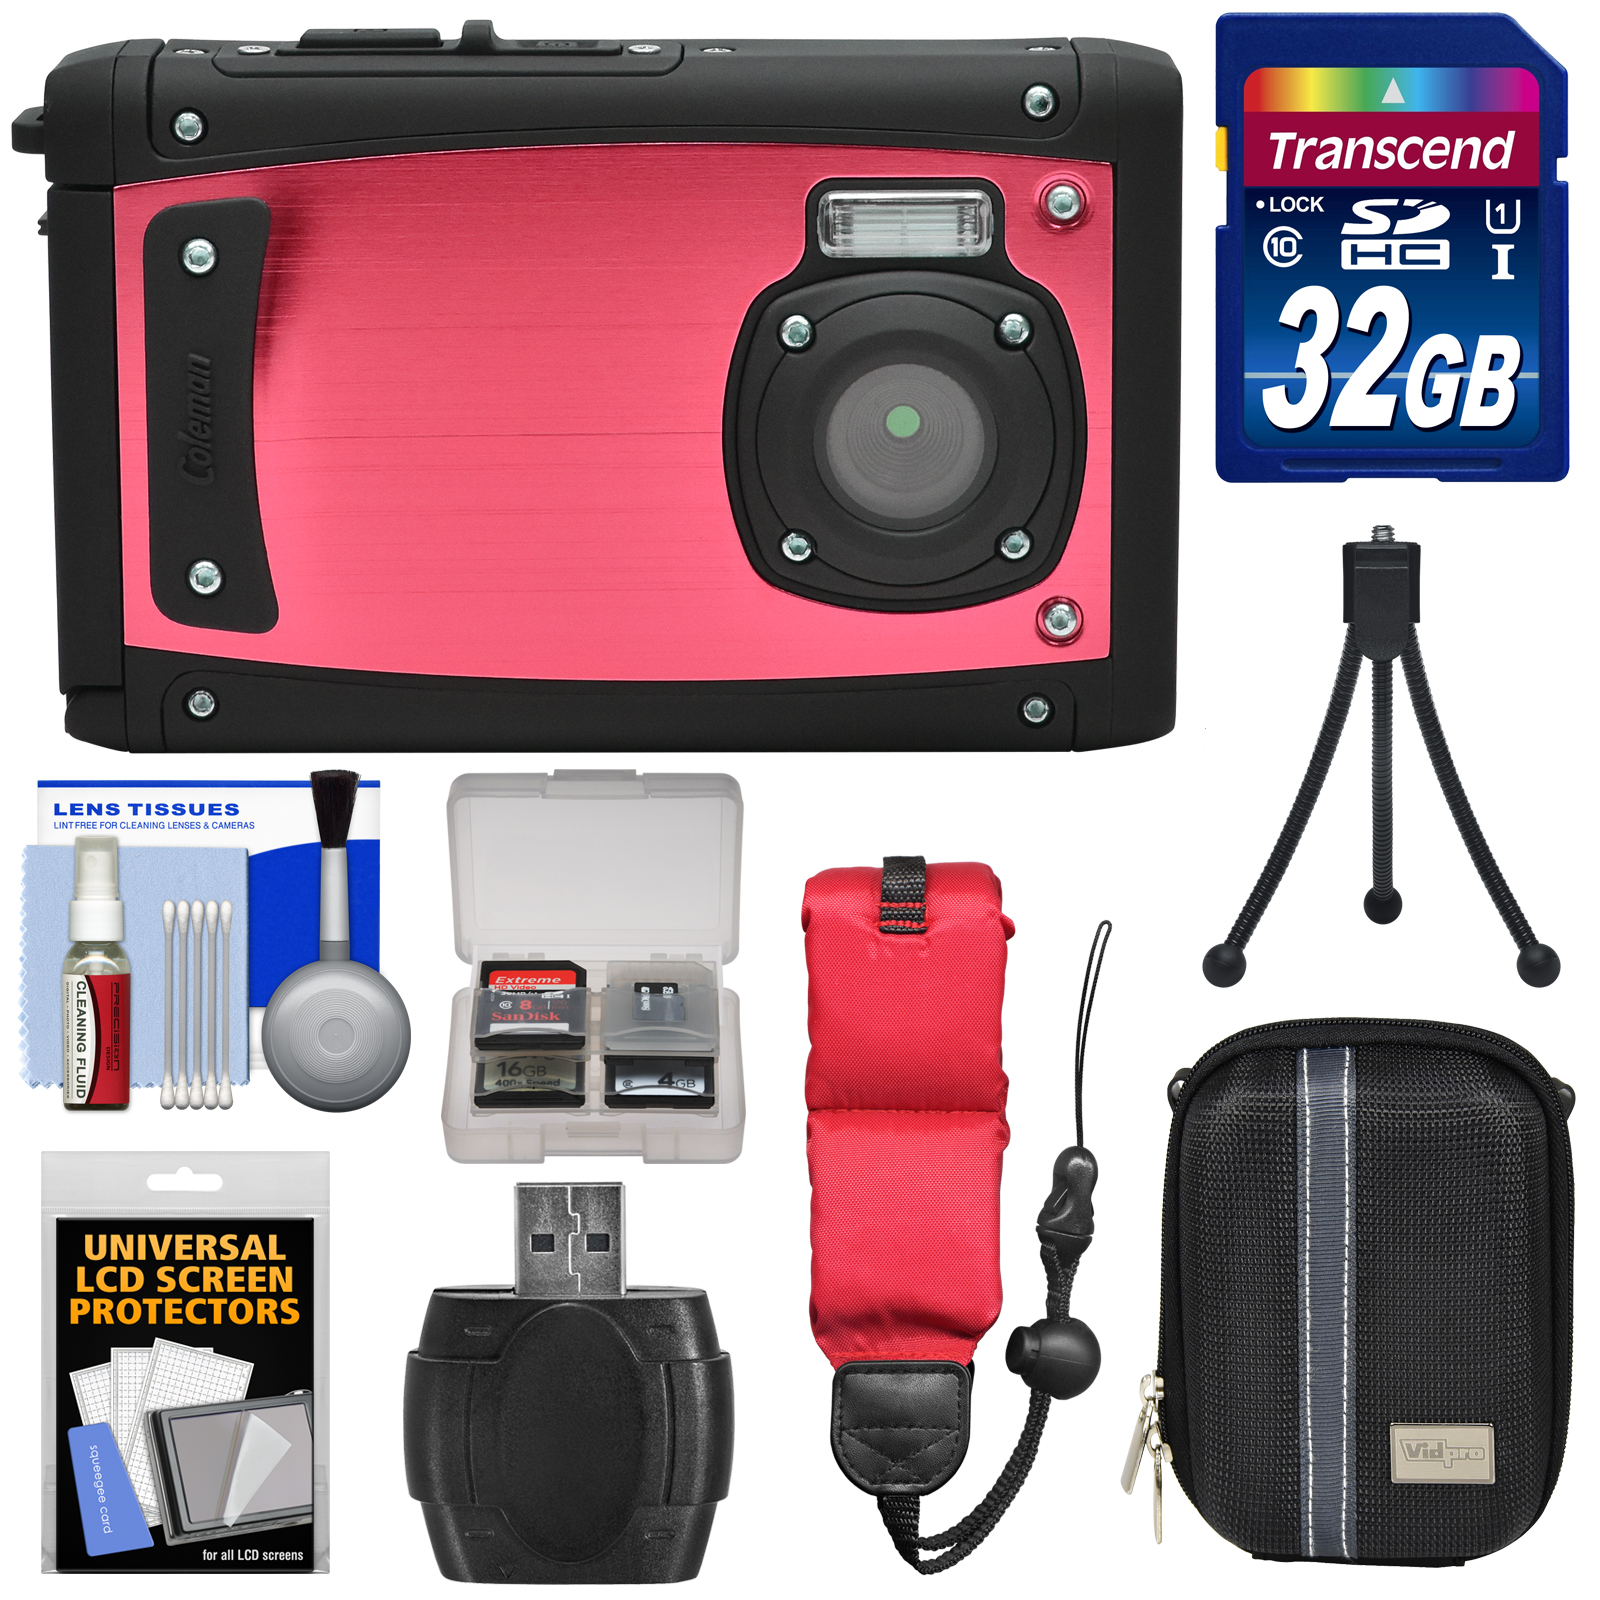 Coleman Venture HD C40WP Shock & Waterproof Digital Camera (Red) with 32GB Card + Case + Float Strap + Tripod + Kit by Coleman